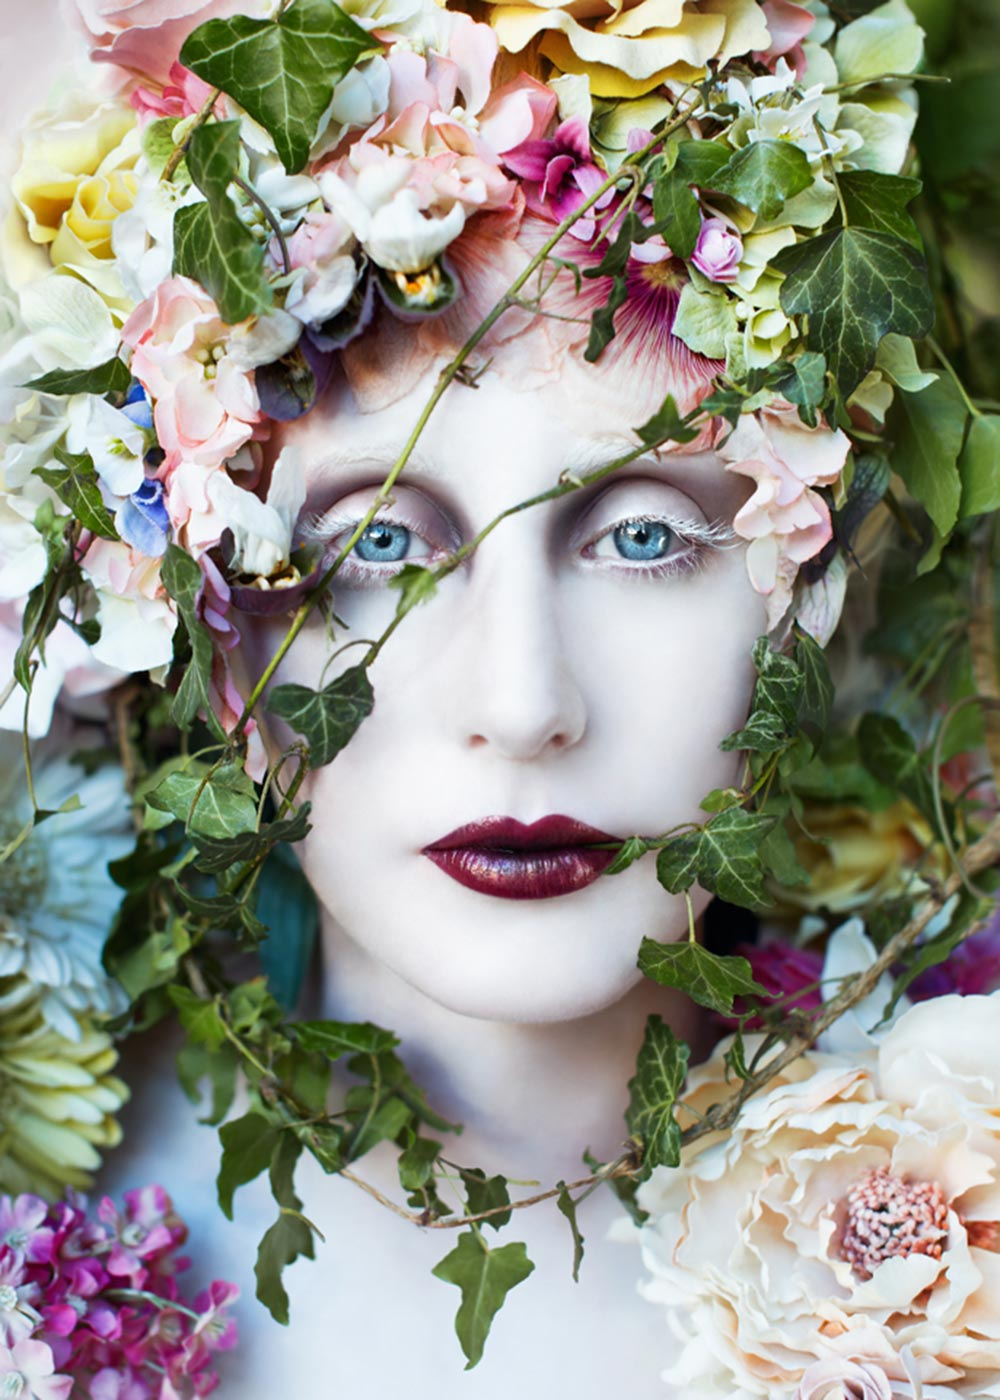 06-The-Pure-Blood-Of-A-Blossom-Kirsty Mitchell